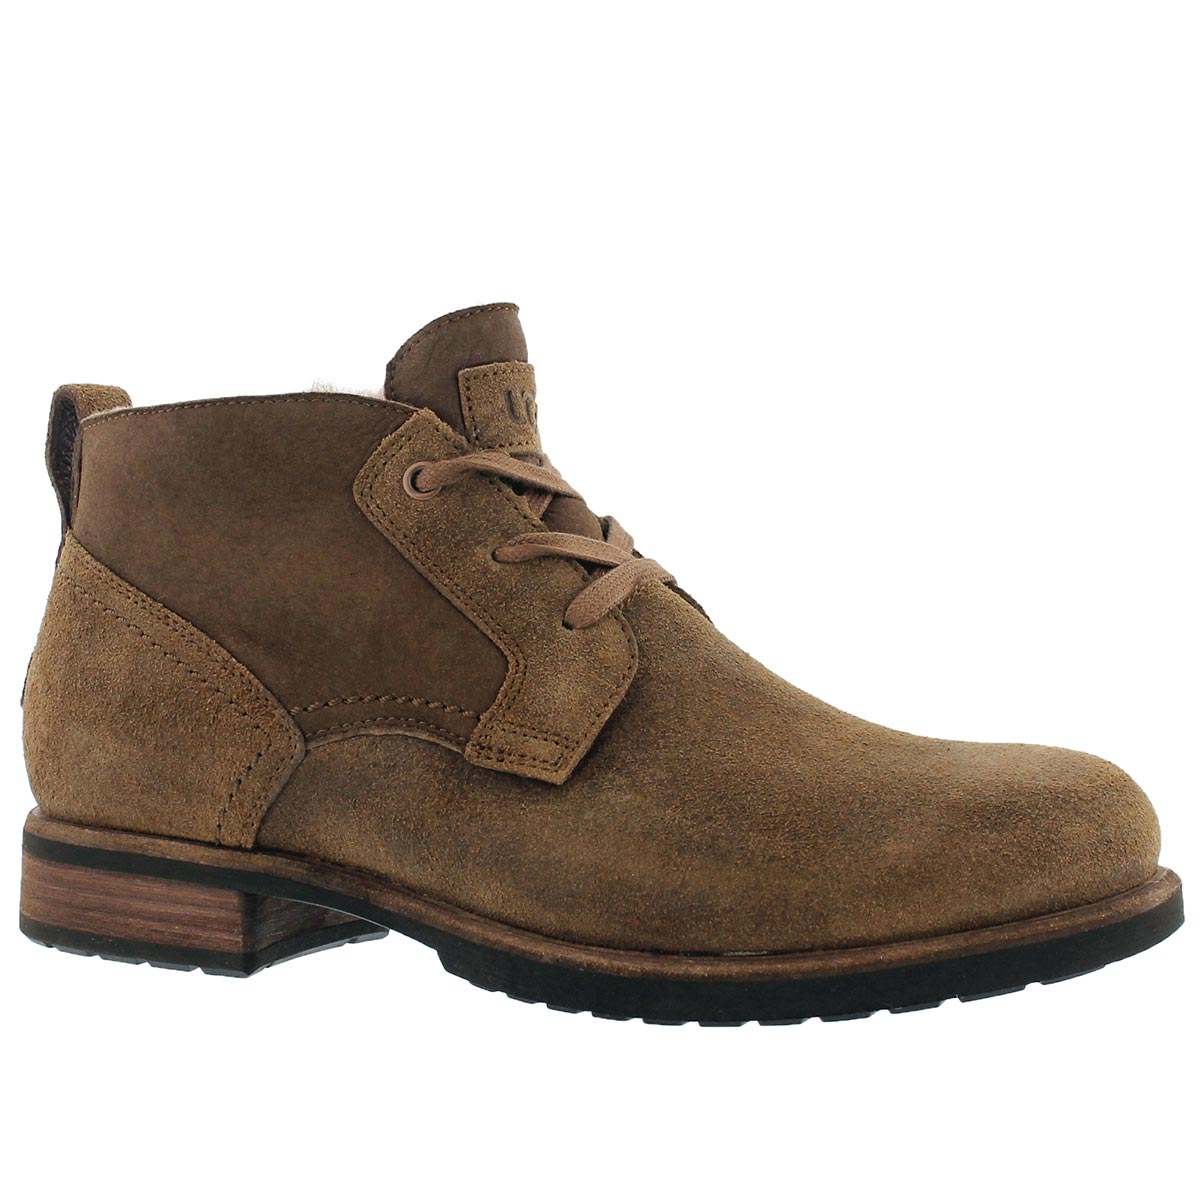 Mns Brompton chestnut laceup chukka boot